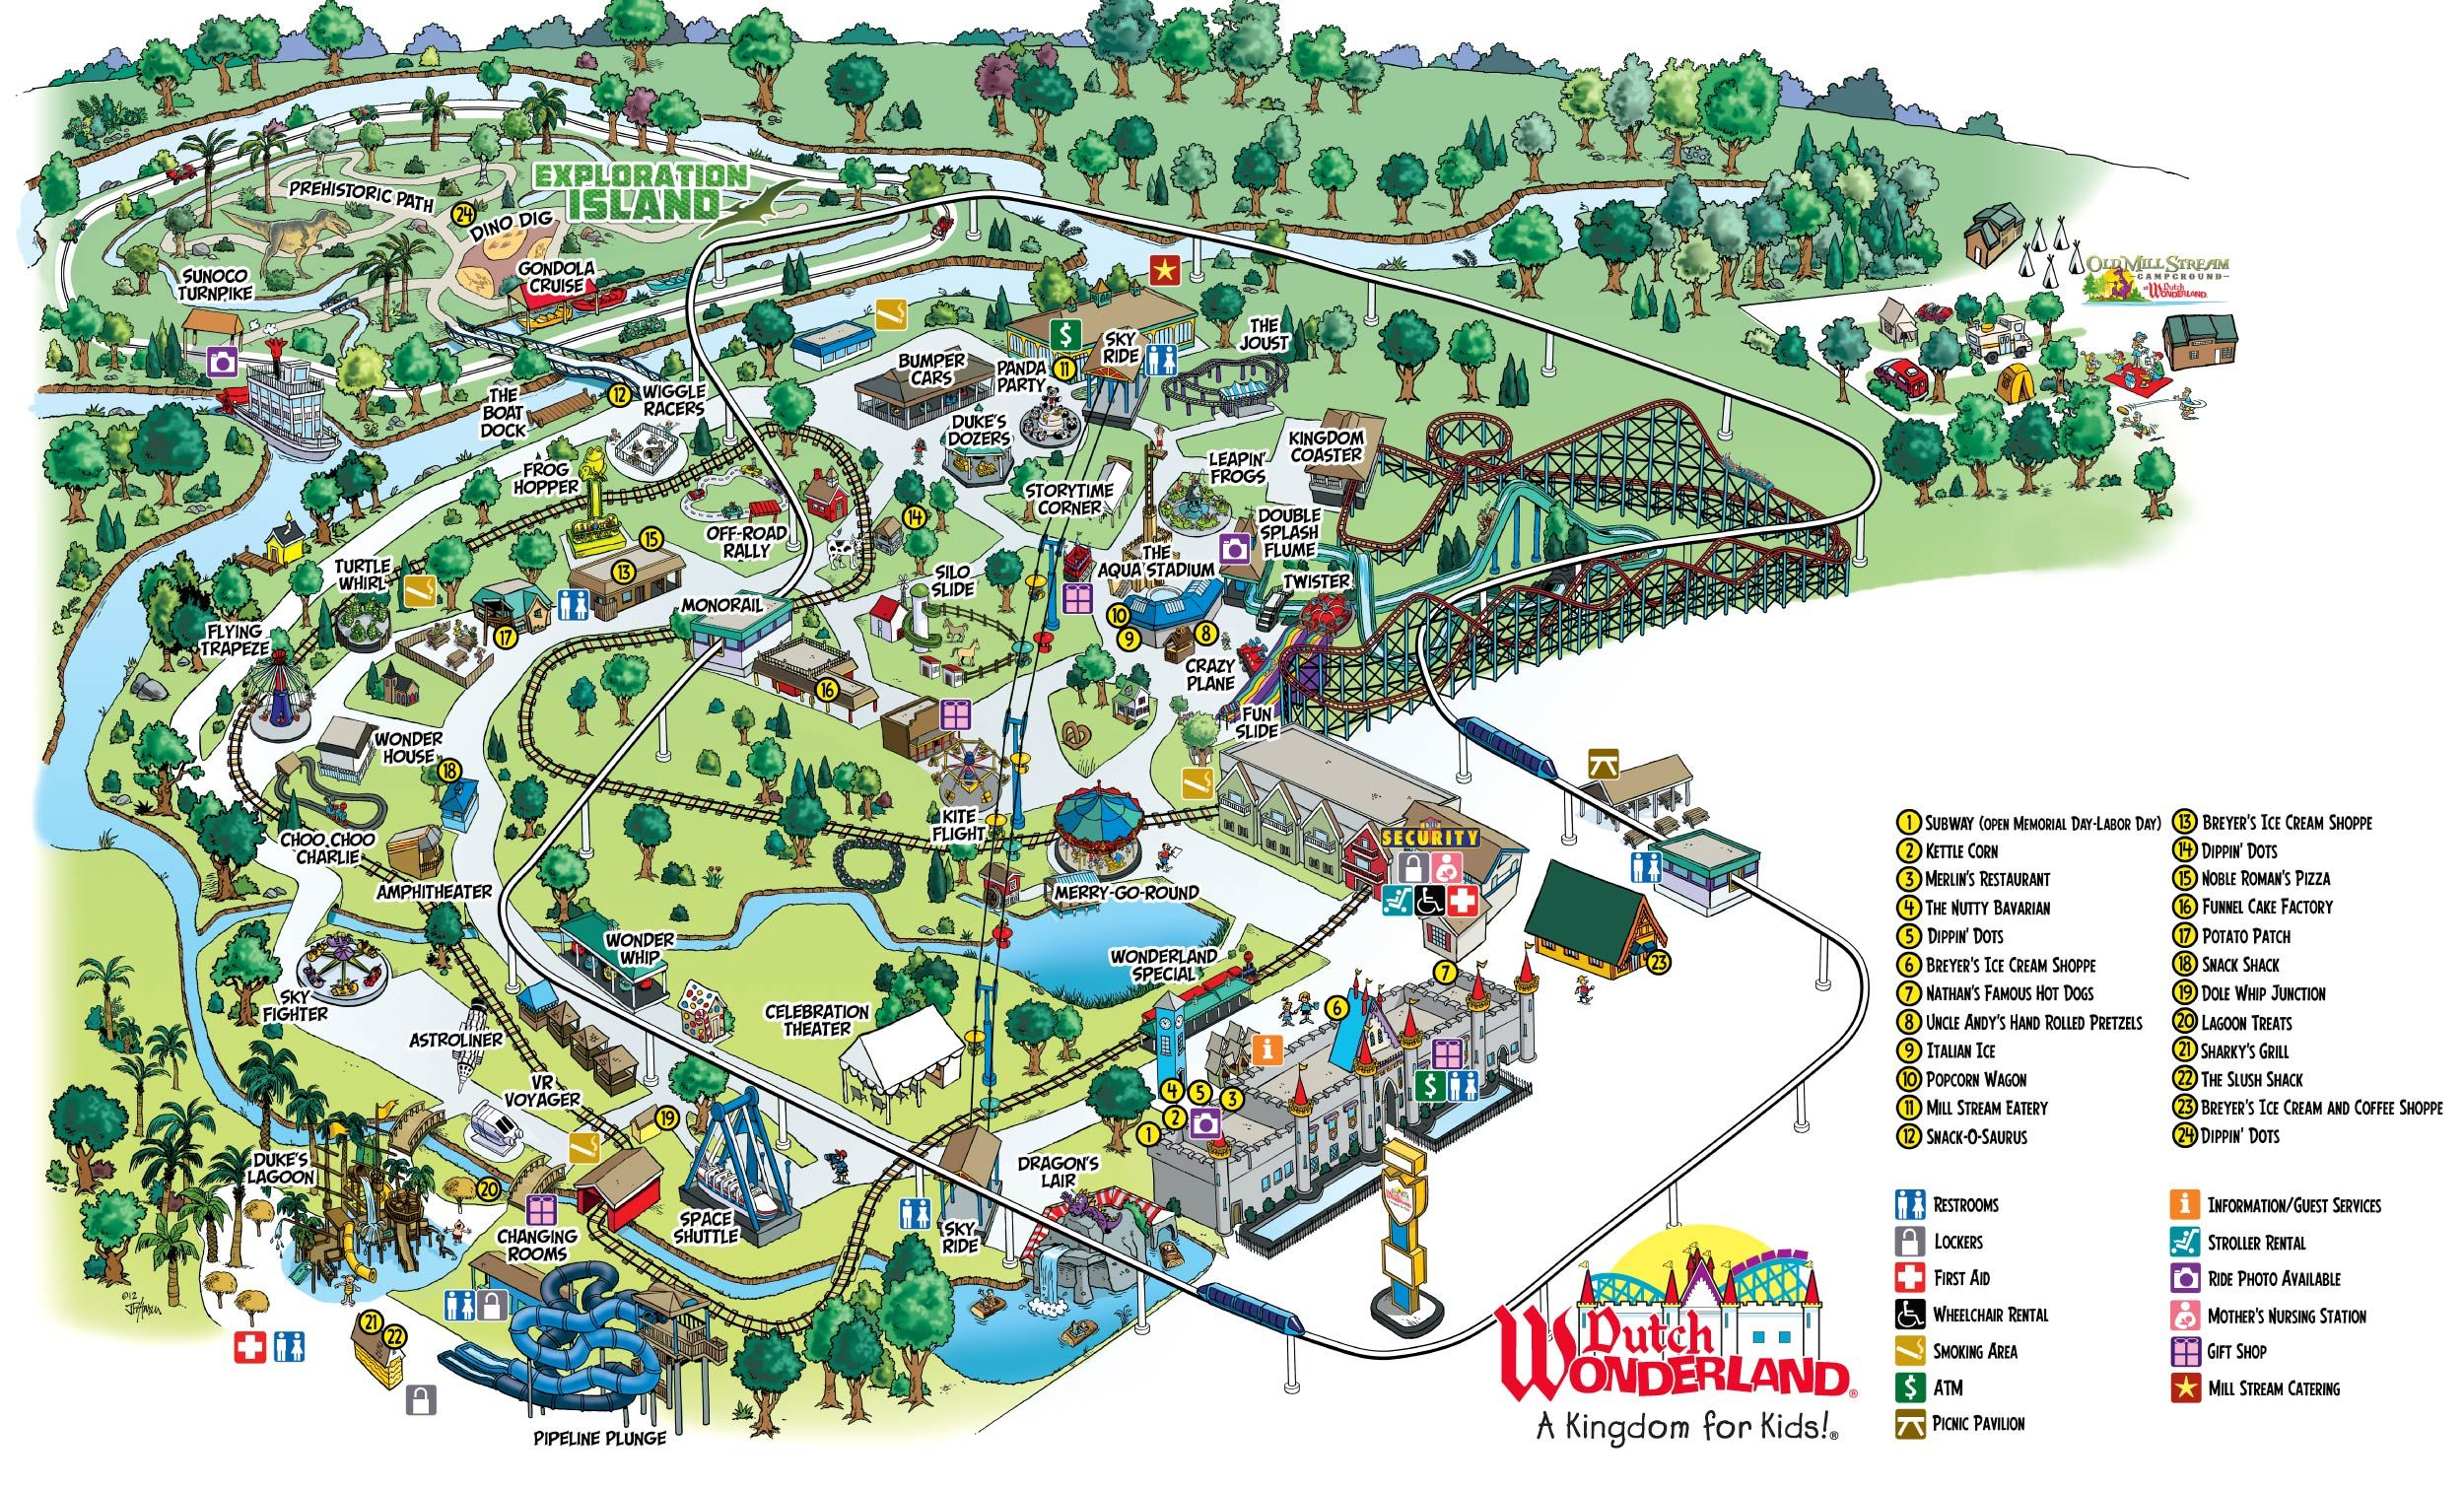 Park Map of Dutch Wonderland Amusement Park in Lancaster